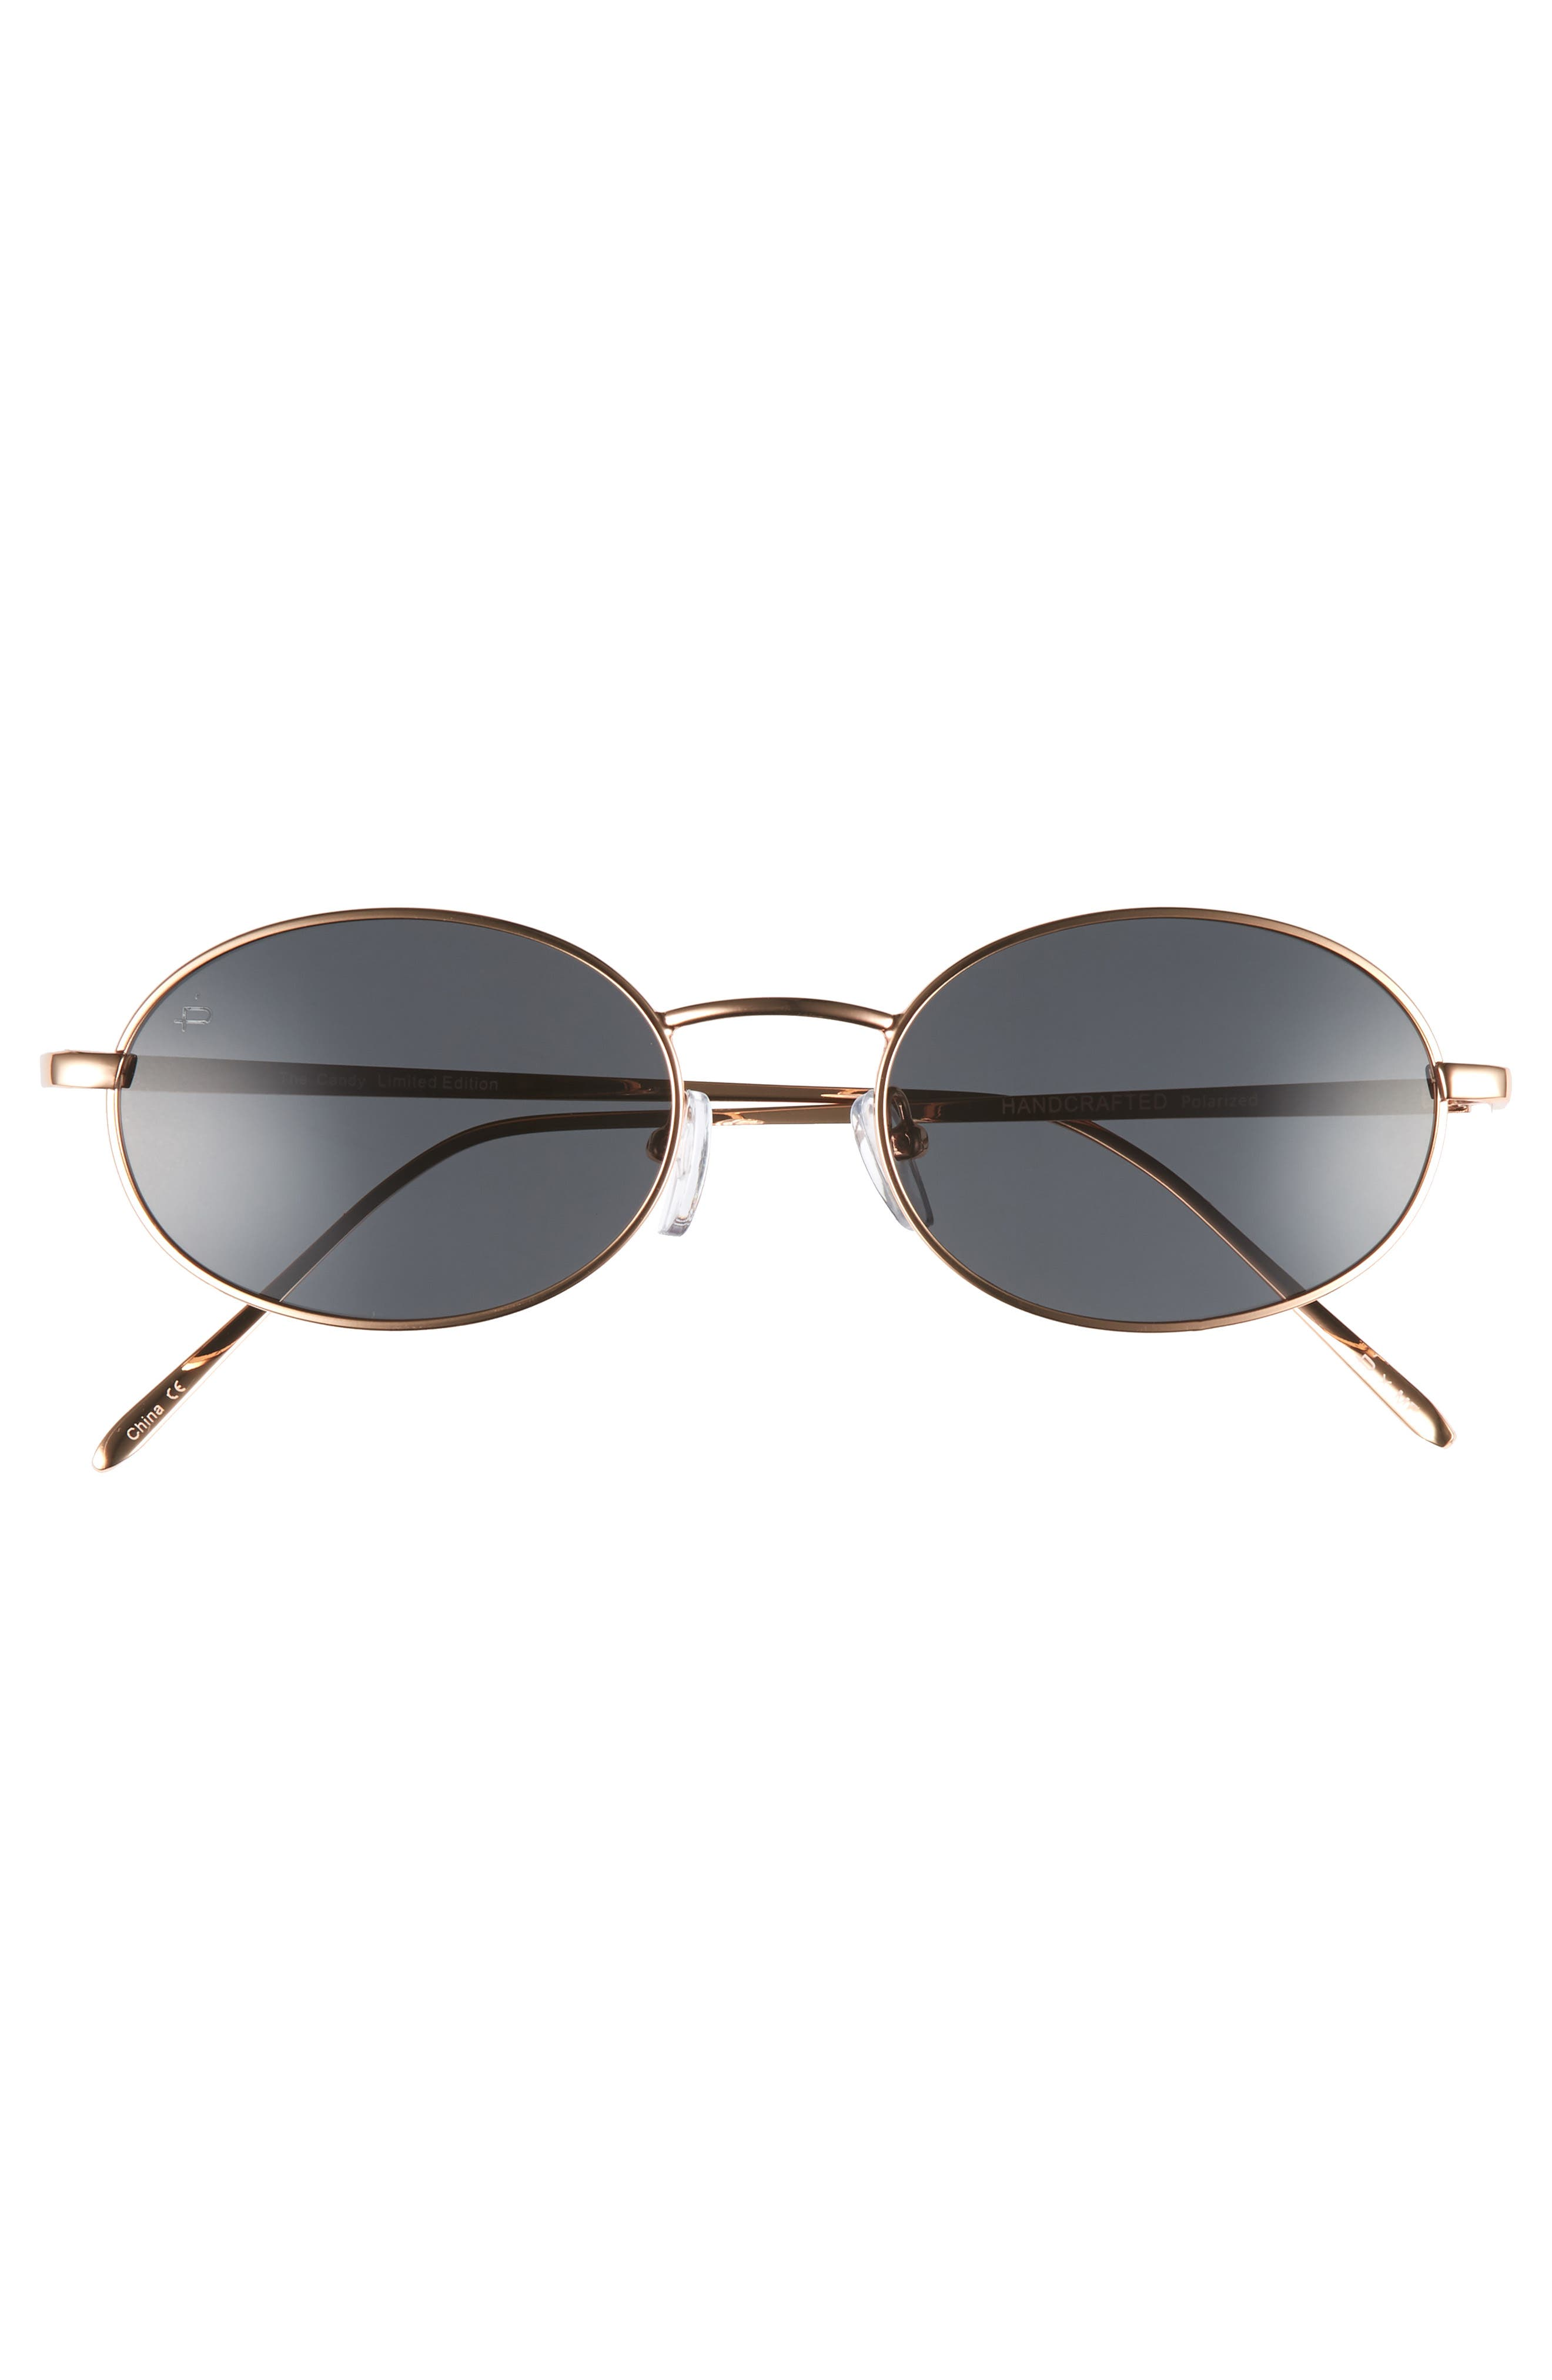 Privé Revaux x Madelaine Petsch The Candy 50mm Round Sunglasses,                             Alternate thumbnail 4, color,                             Gold/ Smoke